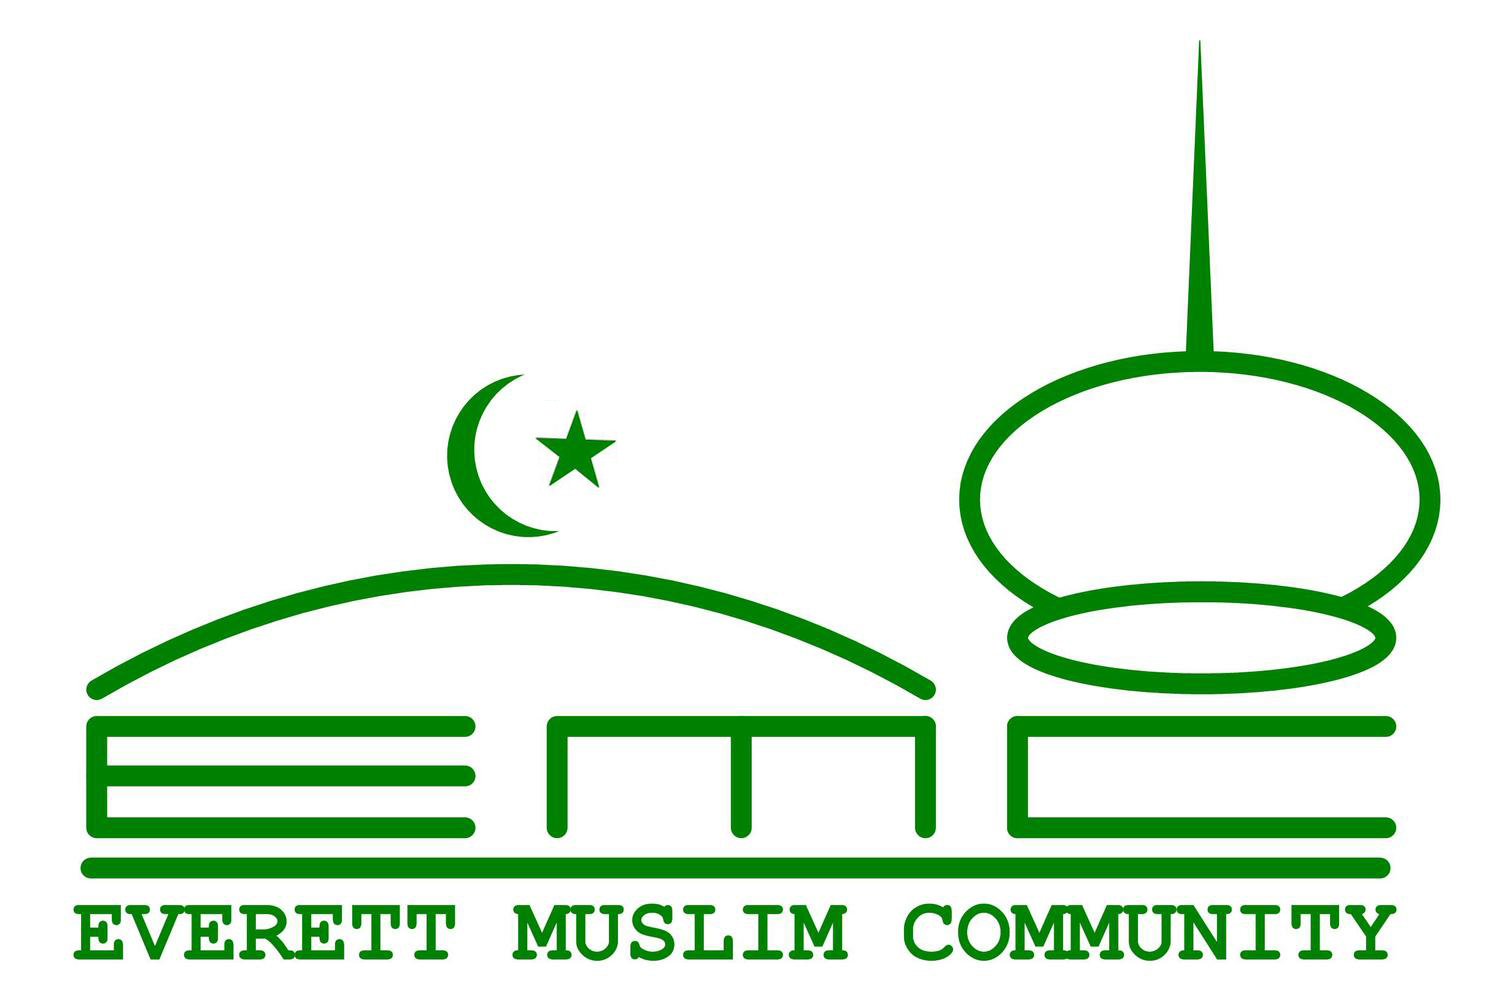 Everett Muslim Community